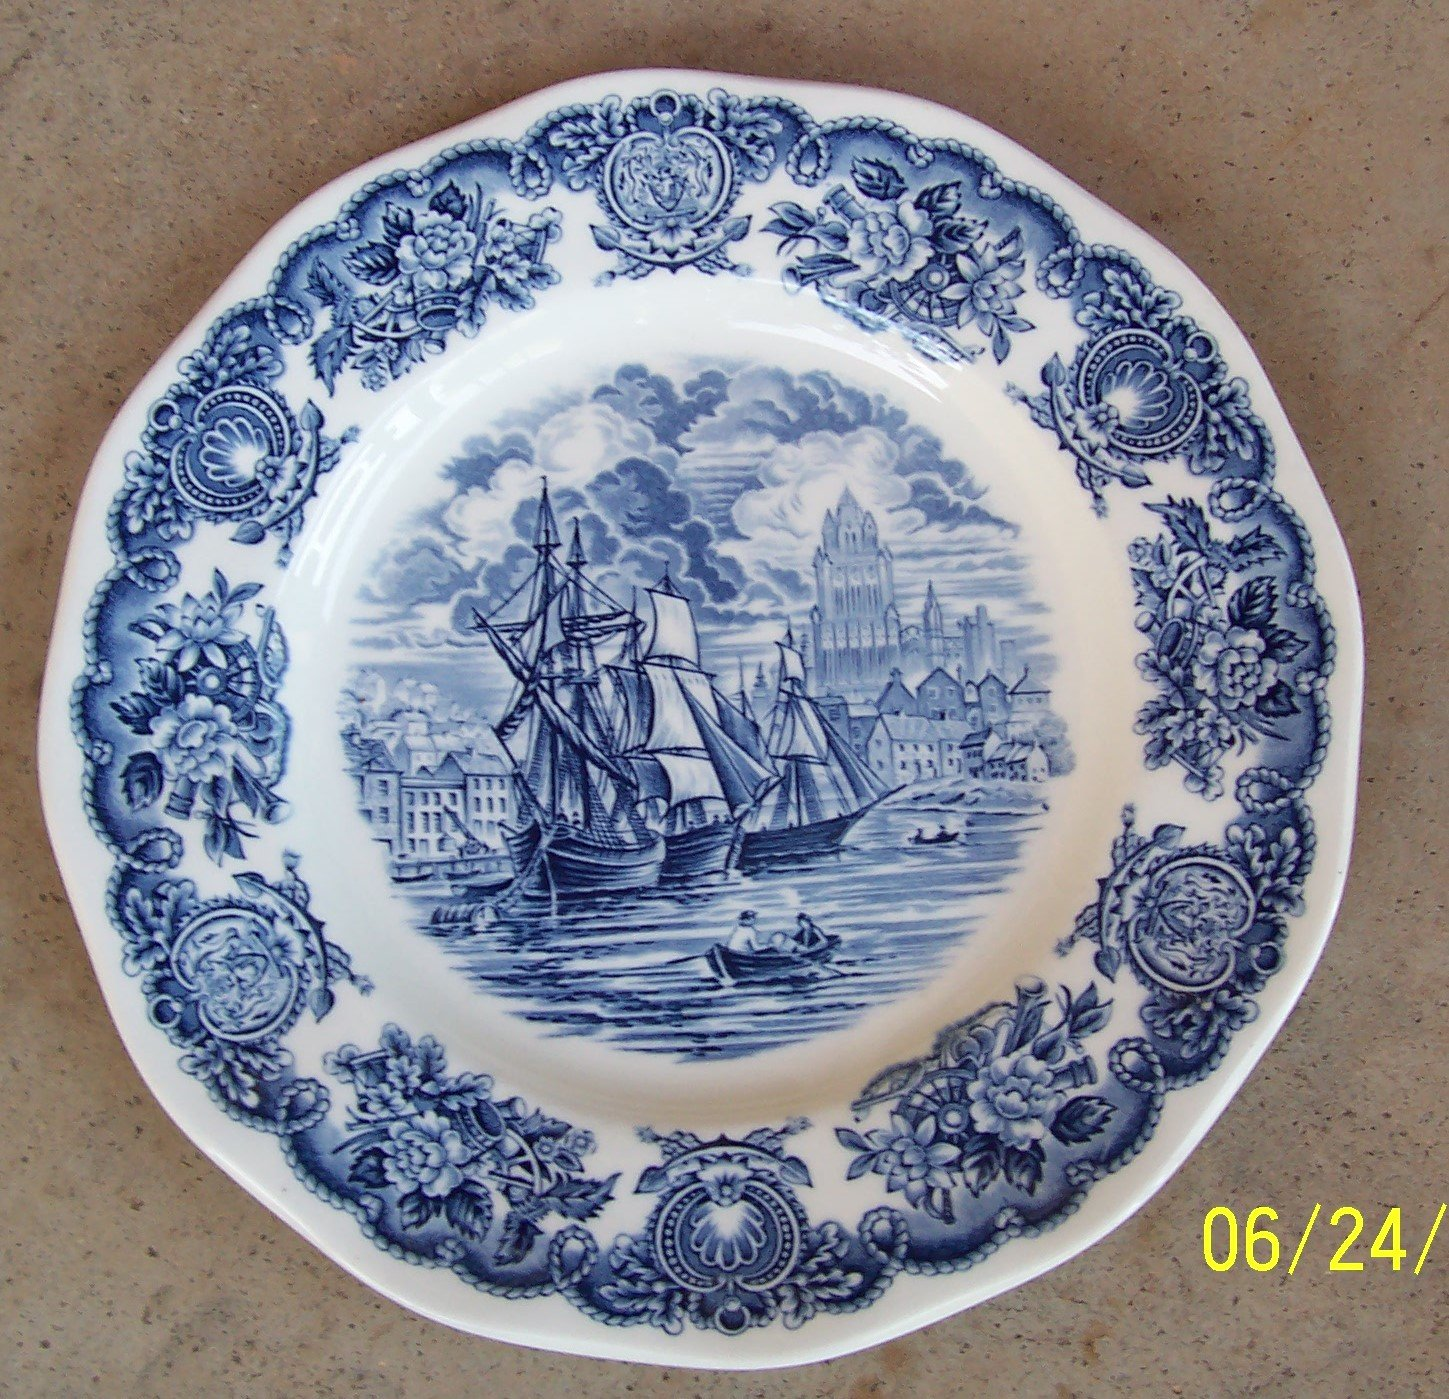 "Blue & White Ship Historical Ports of England / Port Of Bristol 10"" Donner Plate"